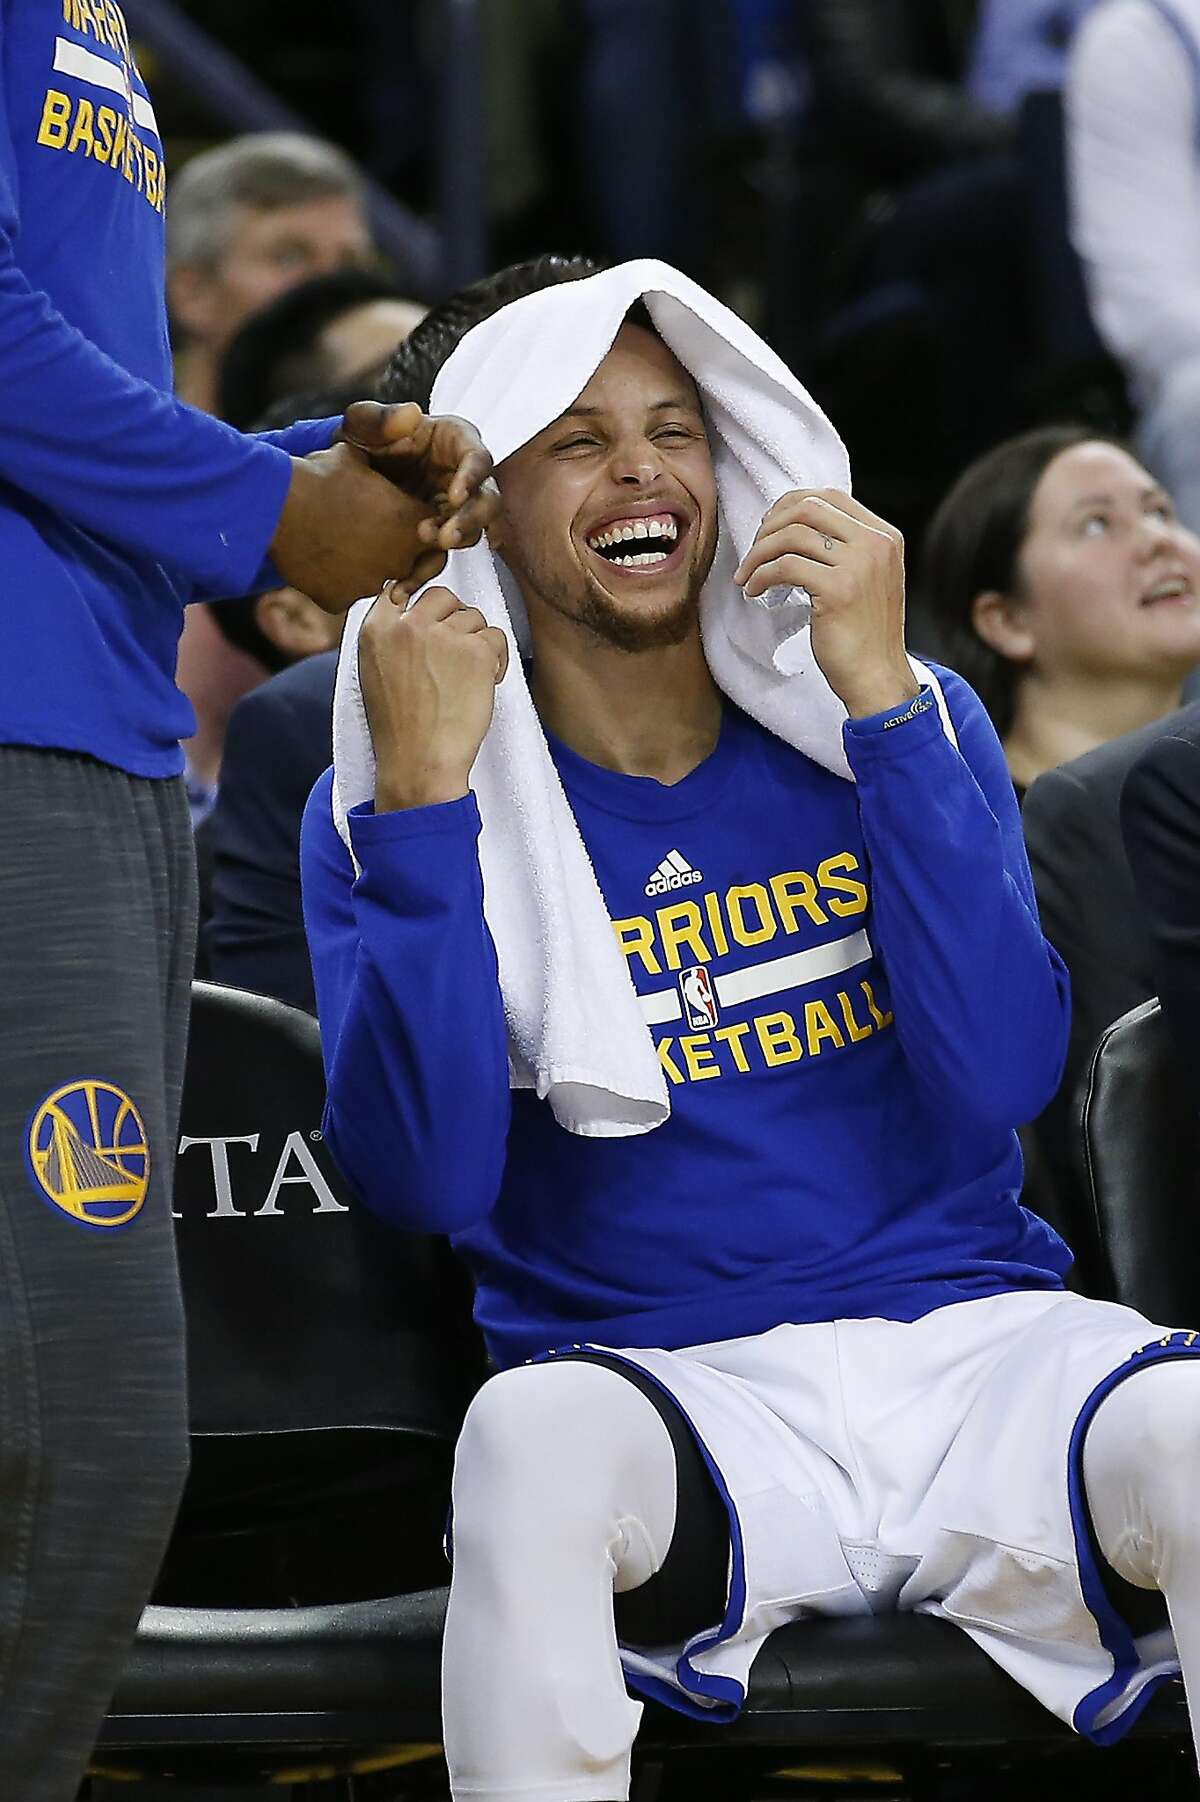 Golden State Warriors' Stephen Curry laughs on the bench during the first half against the Portland Trail Blazers in a NBA game at Oracle Arena in Oakland, Calif., on Friday, March 11, 2016.